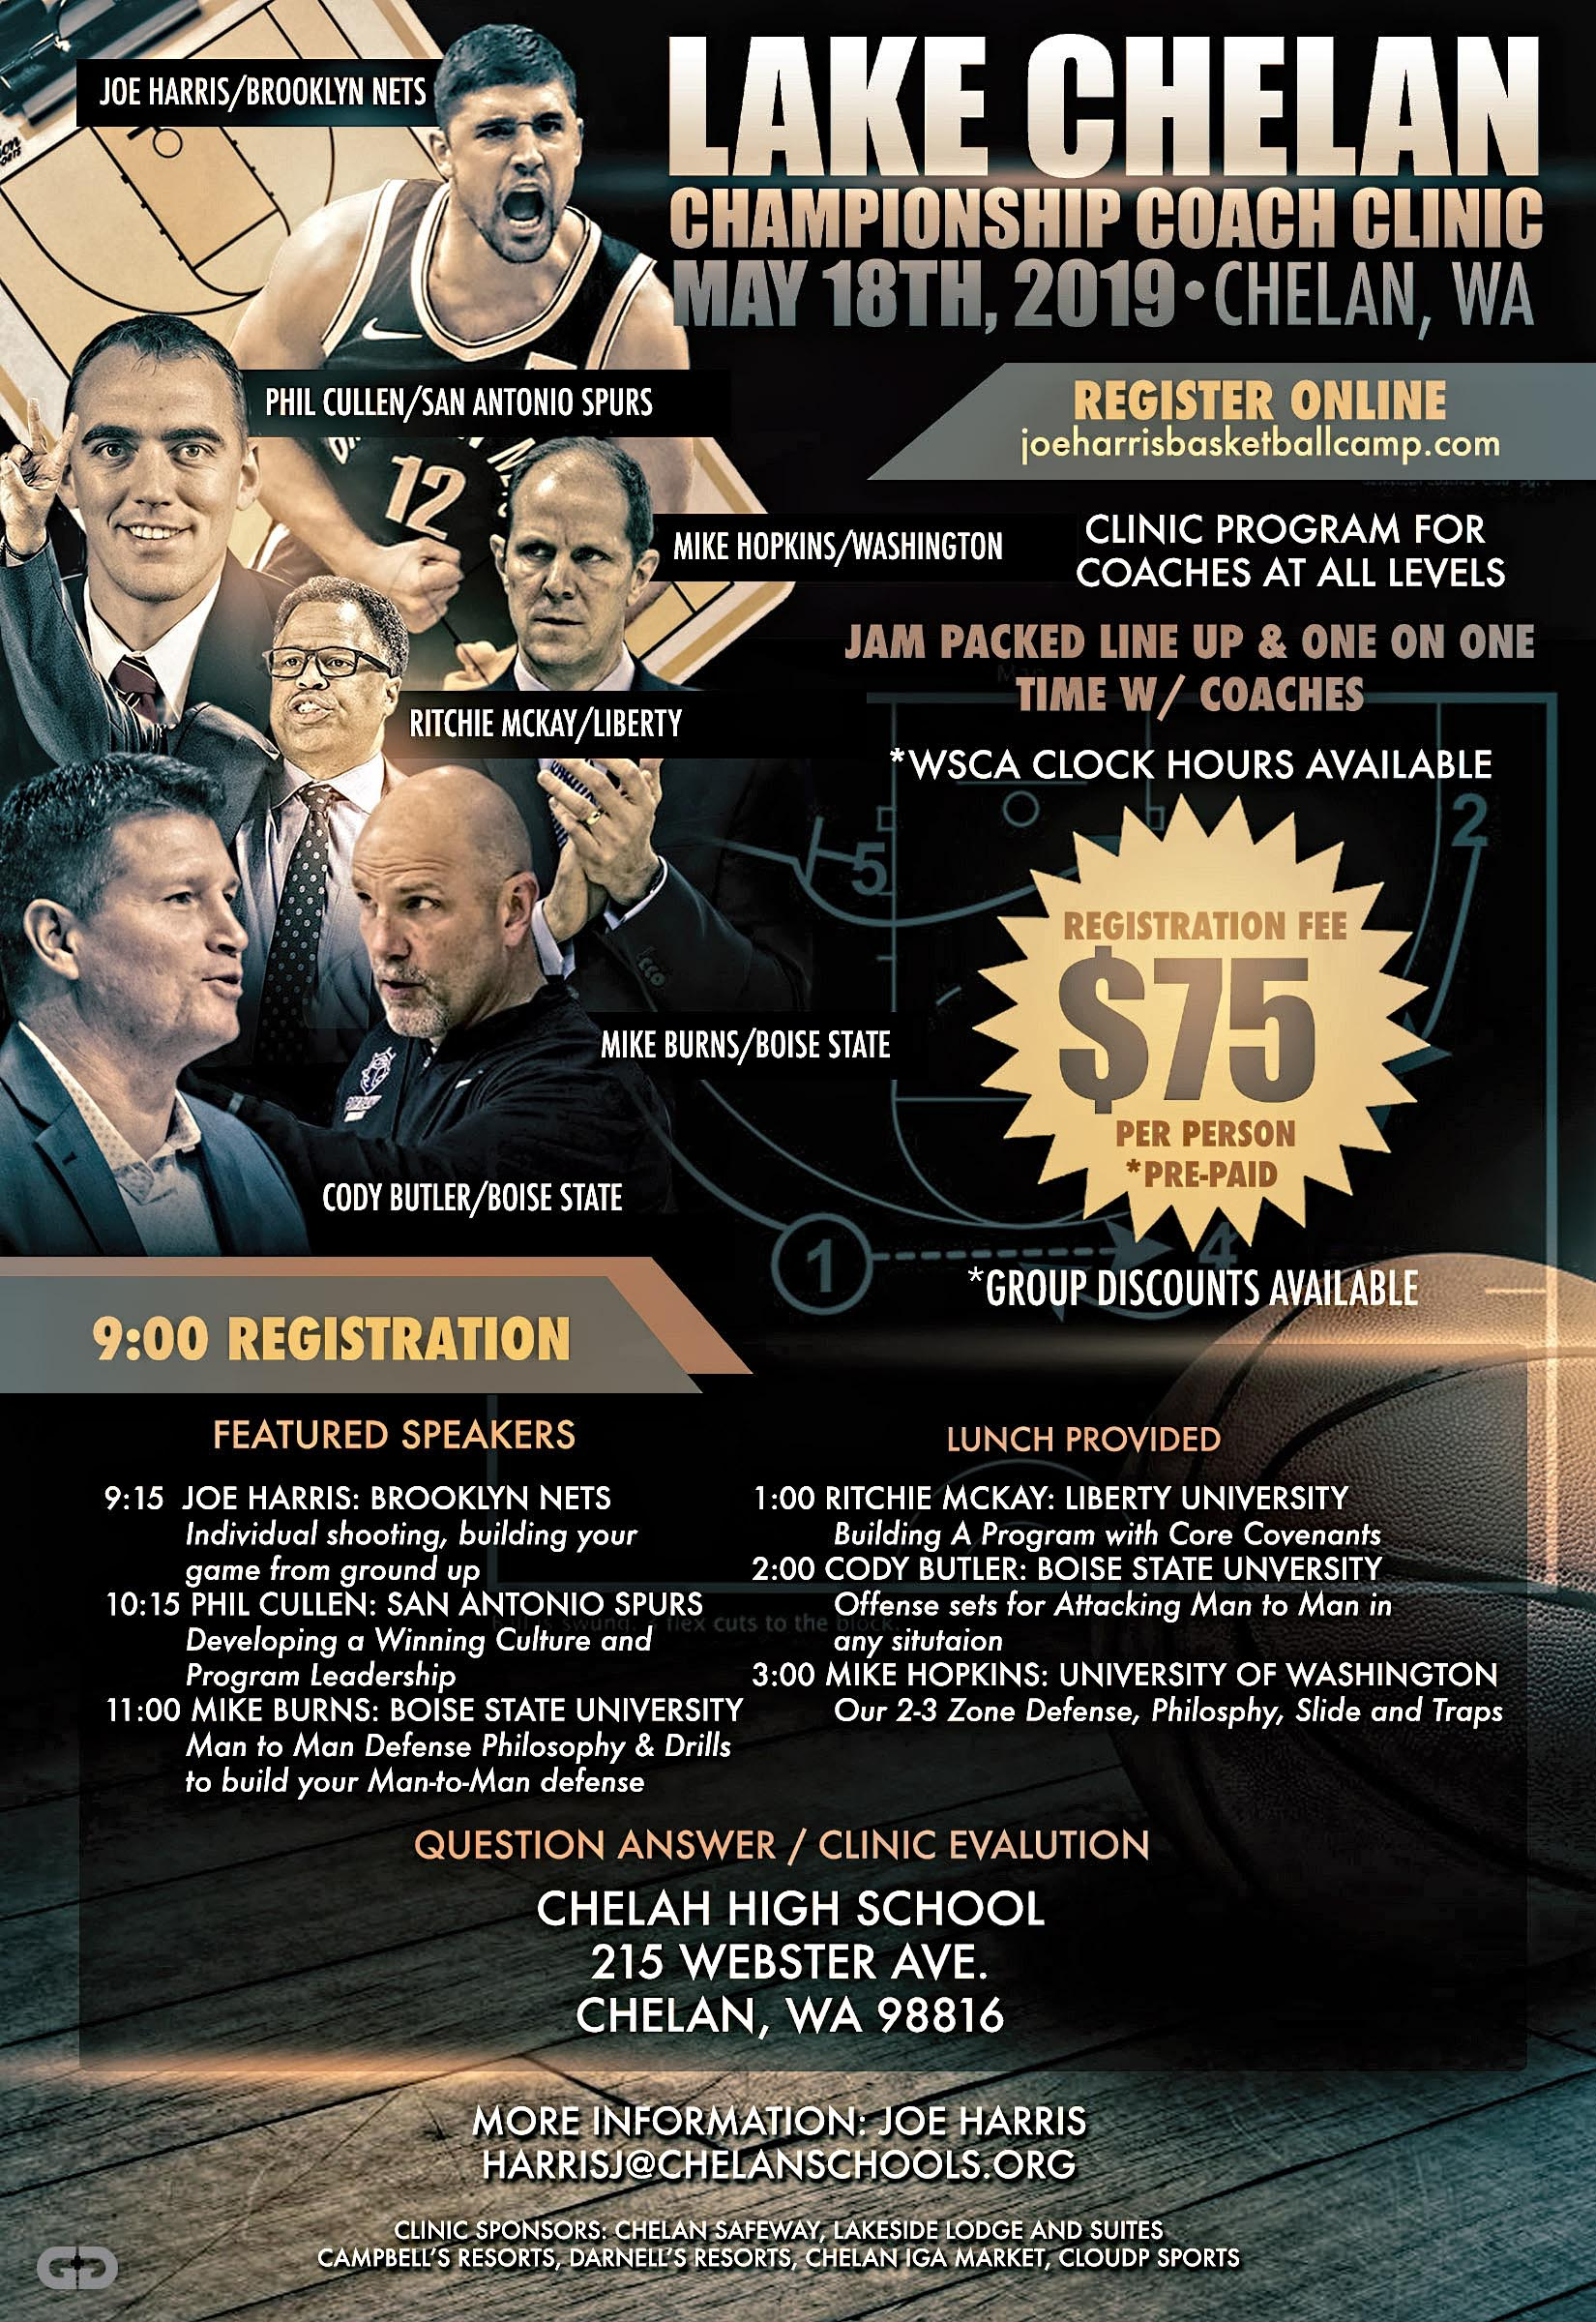 Image of poster for the Lake Chelan Coaching Clinic